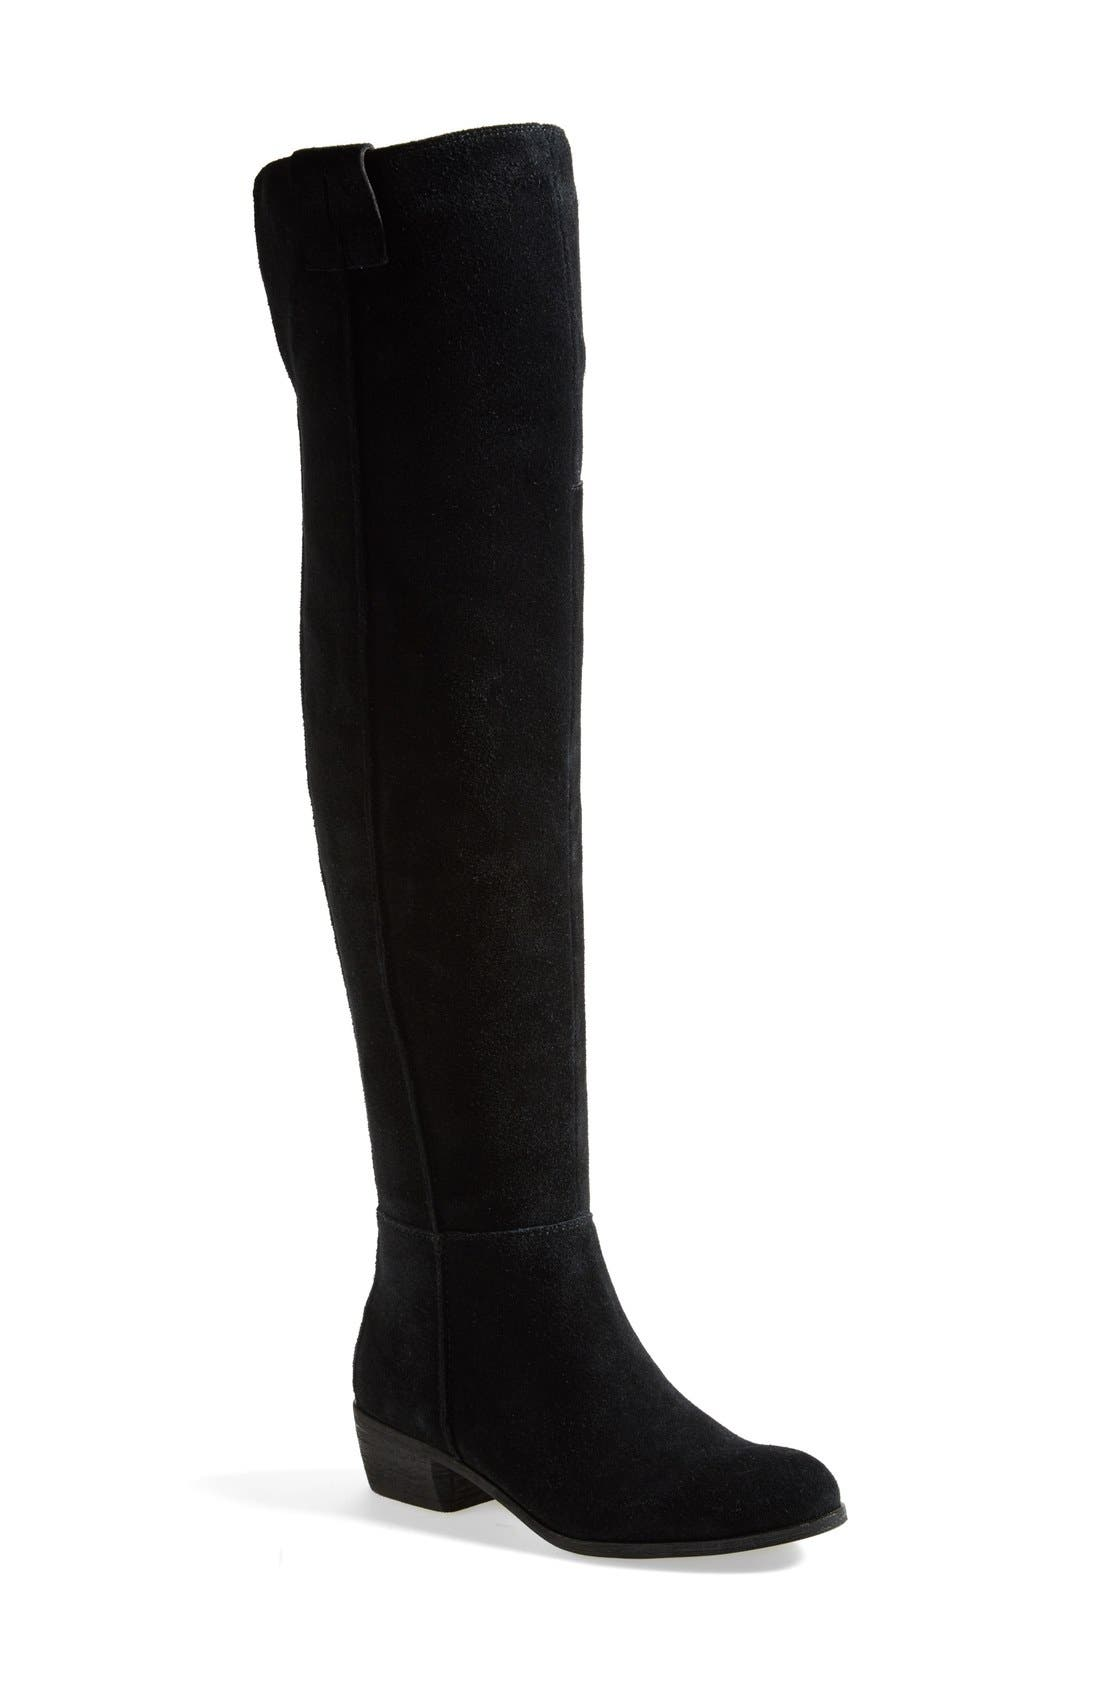 'Johanna' Over the Knee Suede Boot,                             Main thumbnail 1, color,